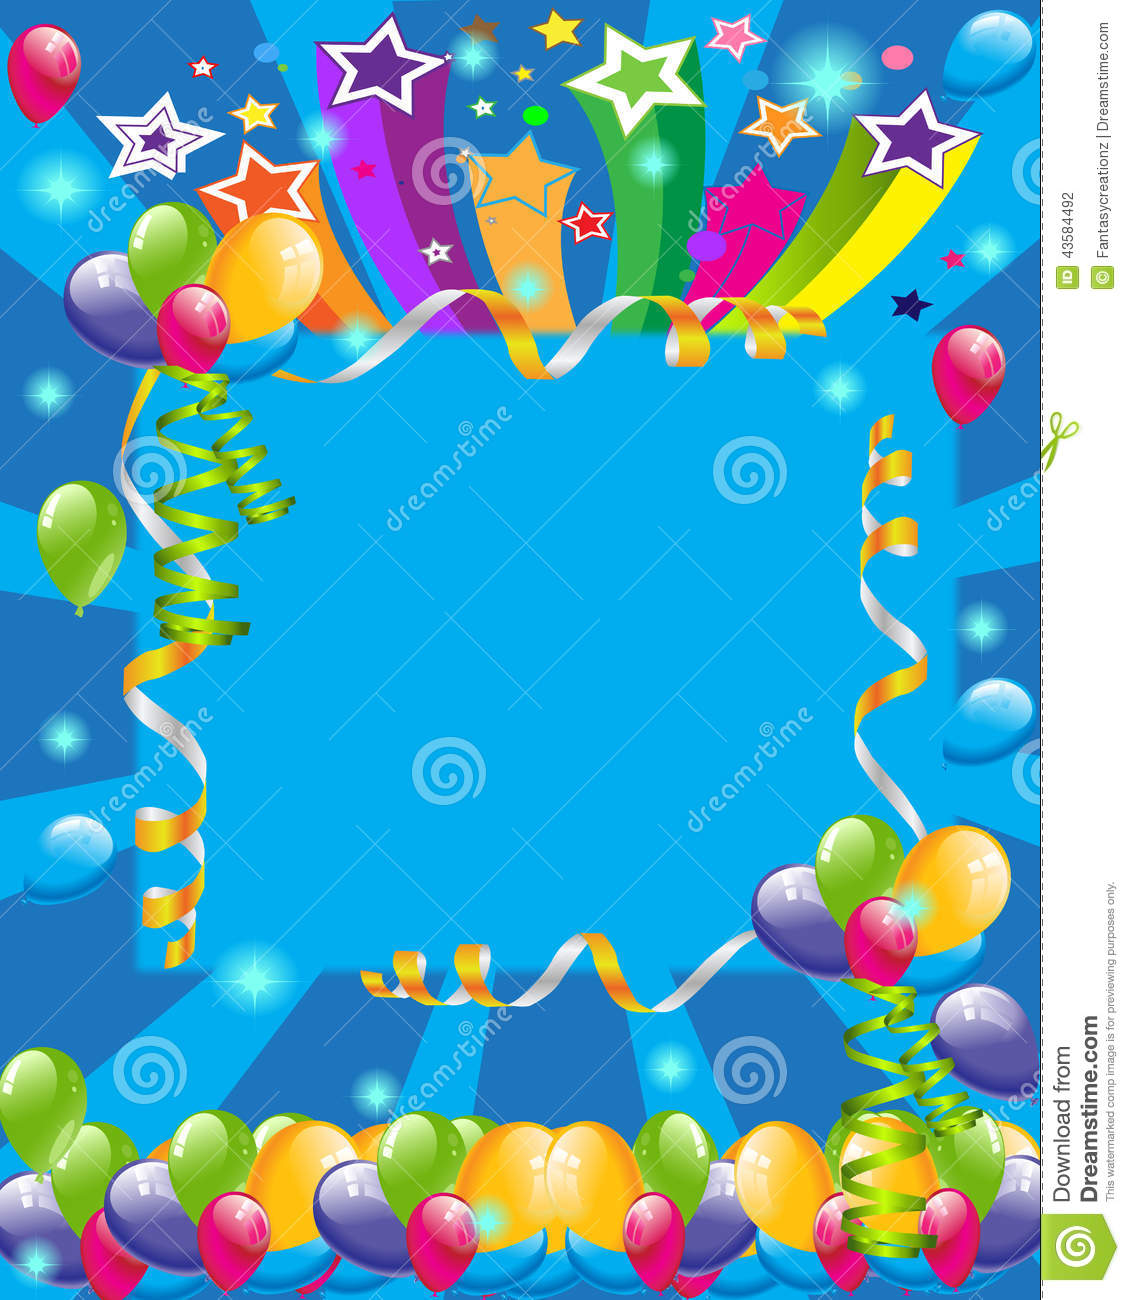 Colorful Balloons And Statrs Illustration For Birthday Cards Party Invitations Backgrounds